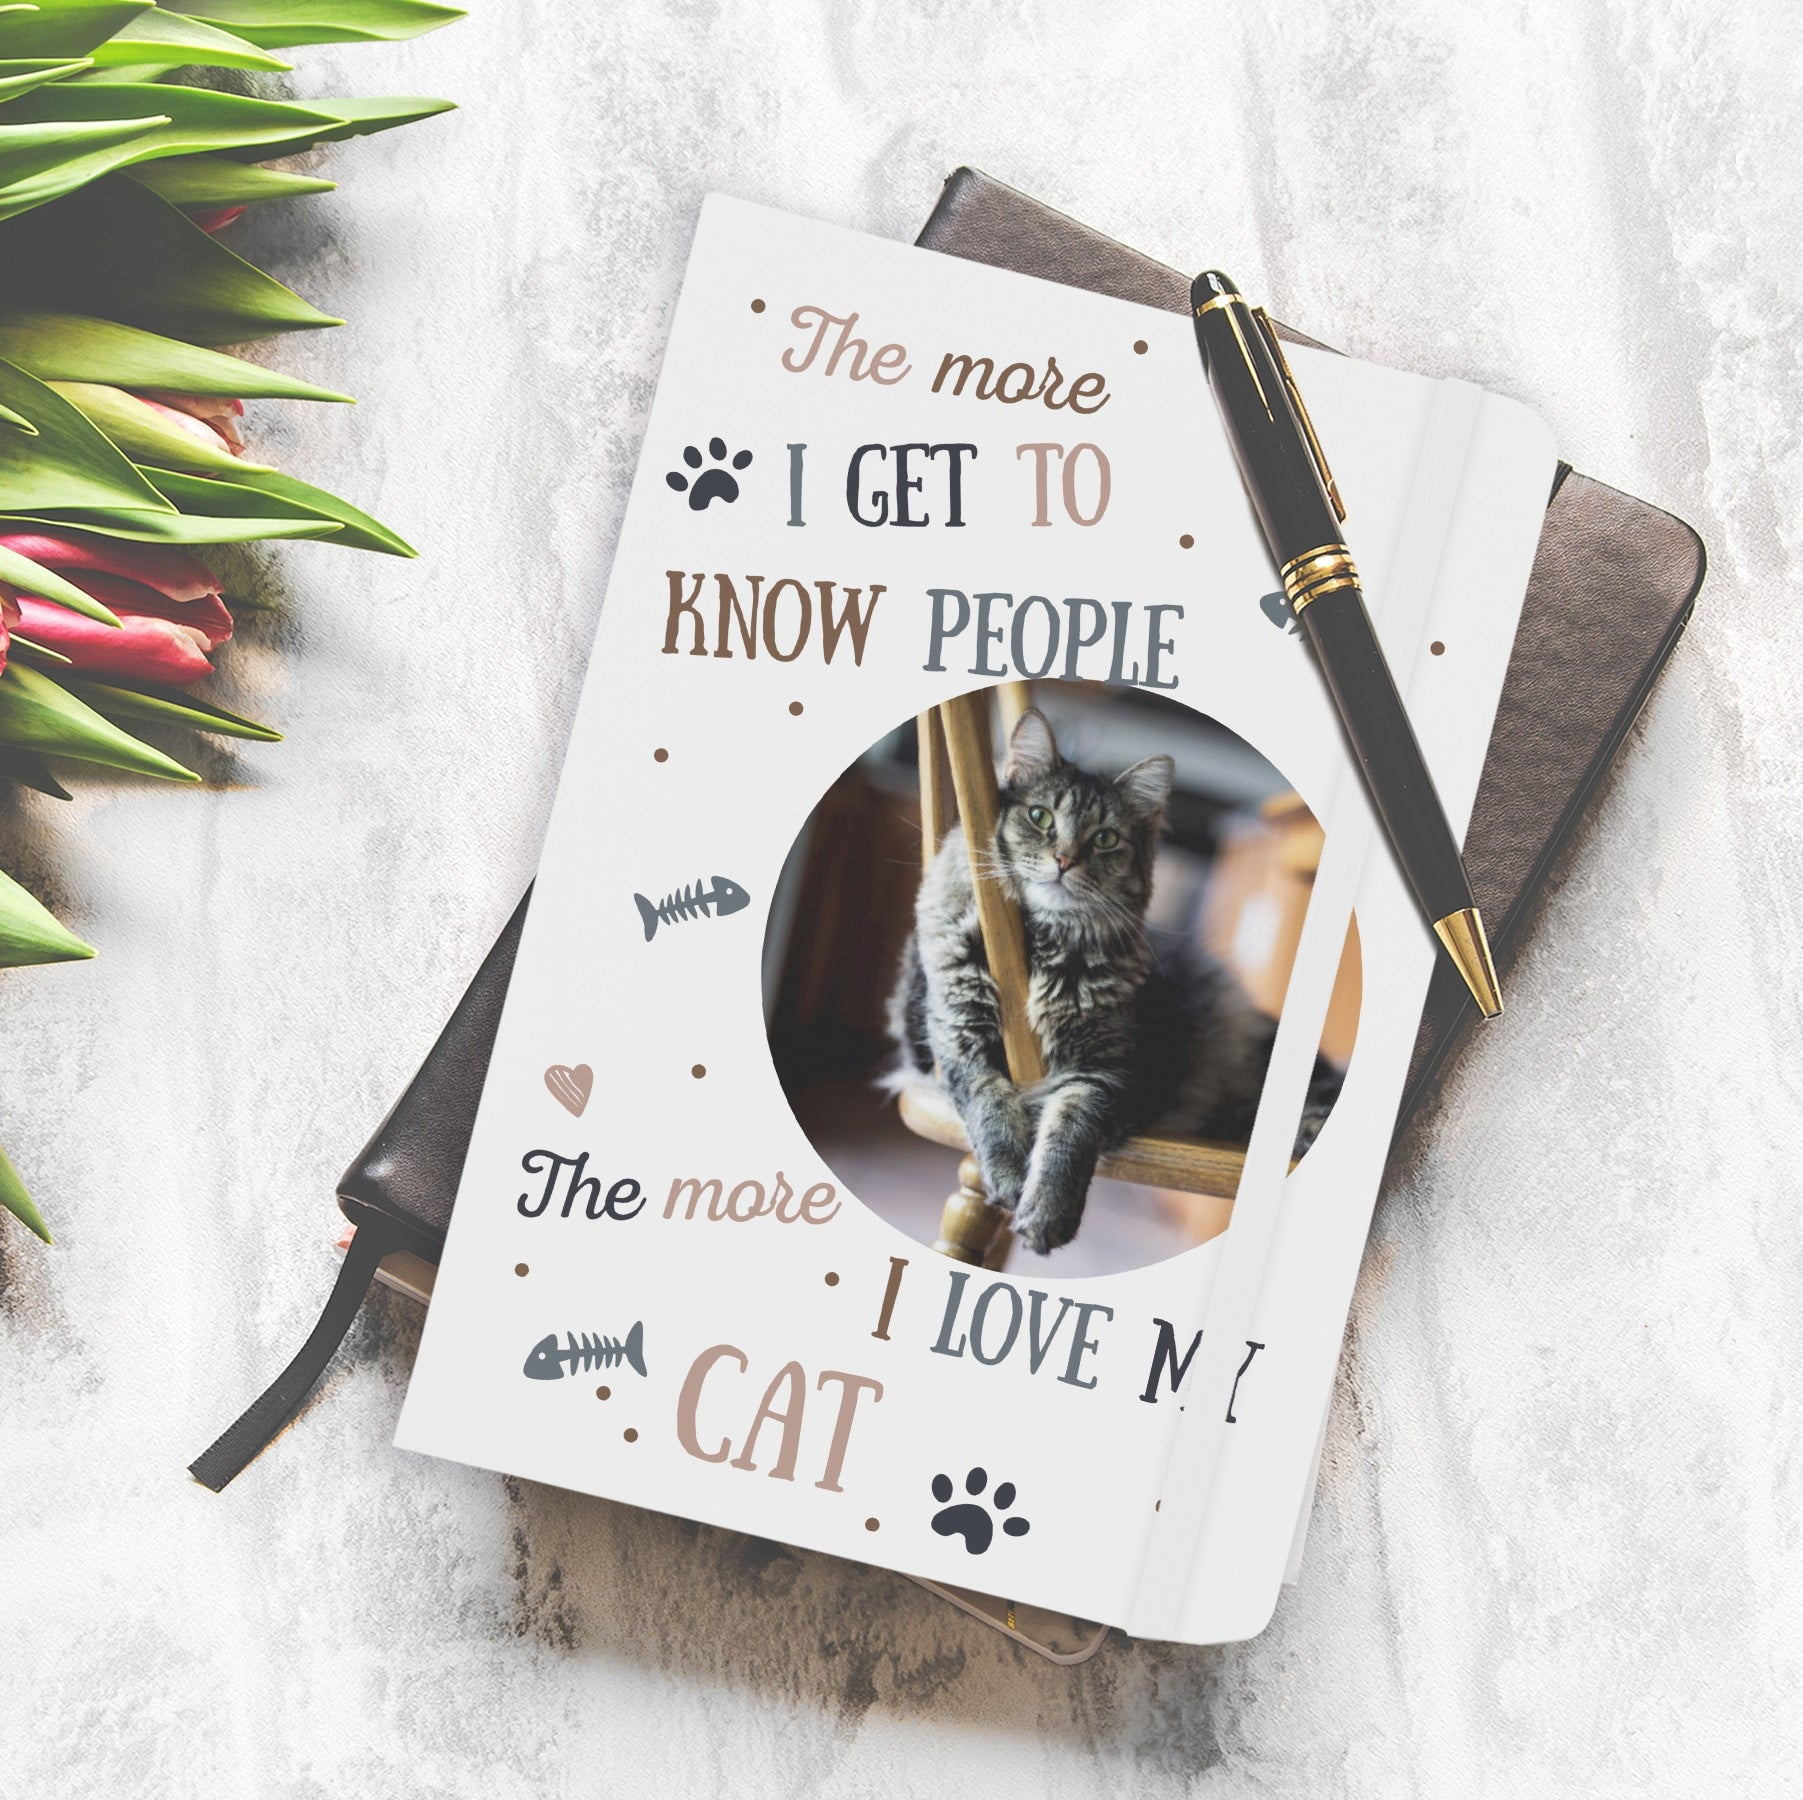 I Love My Cat Photo Upload Notebook, Office Supplies by Low Cost Gifts